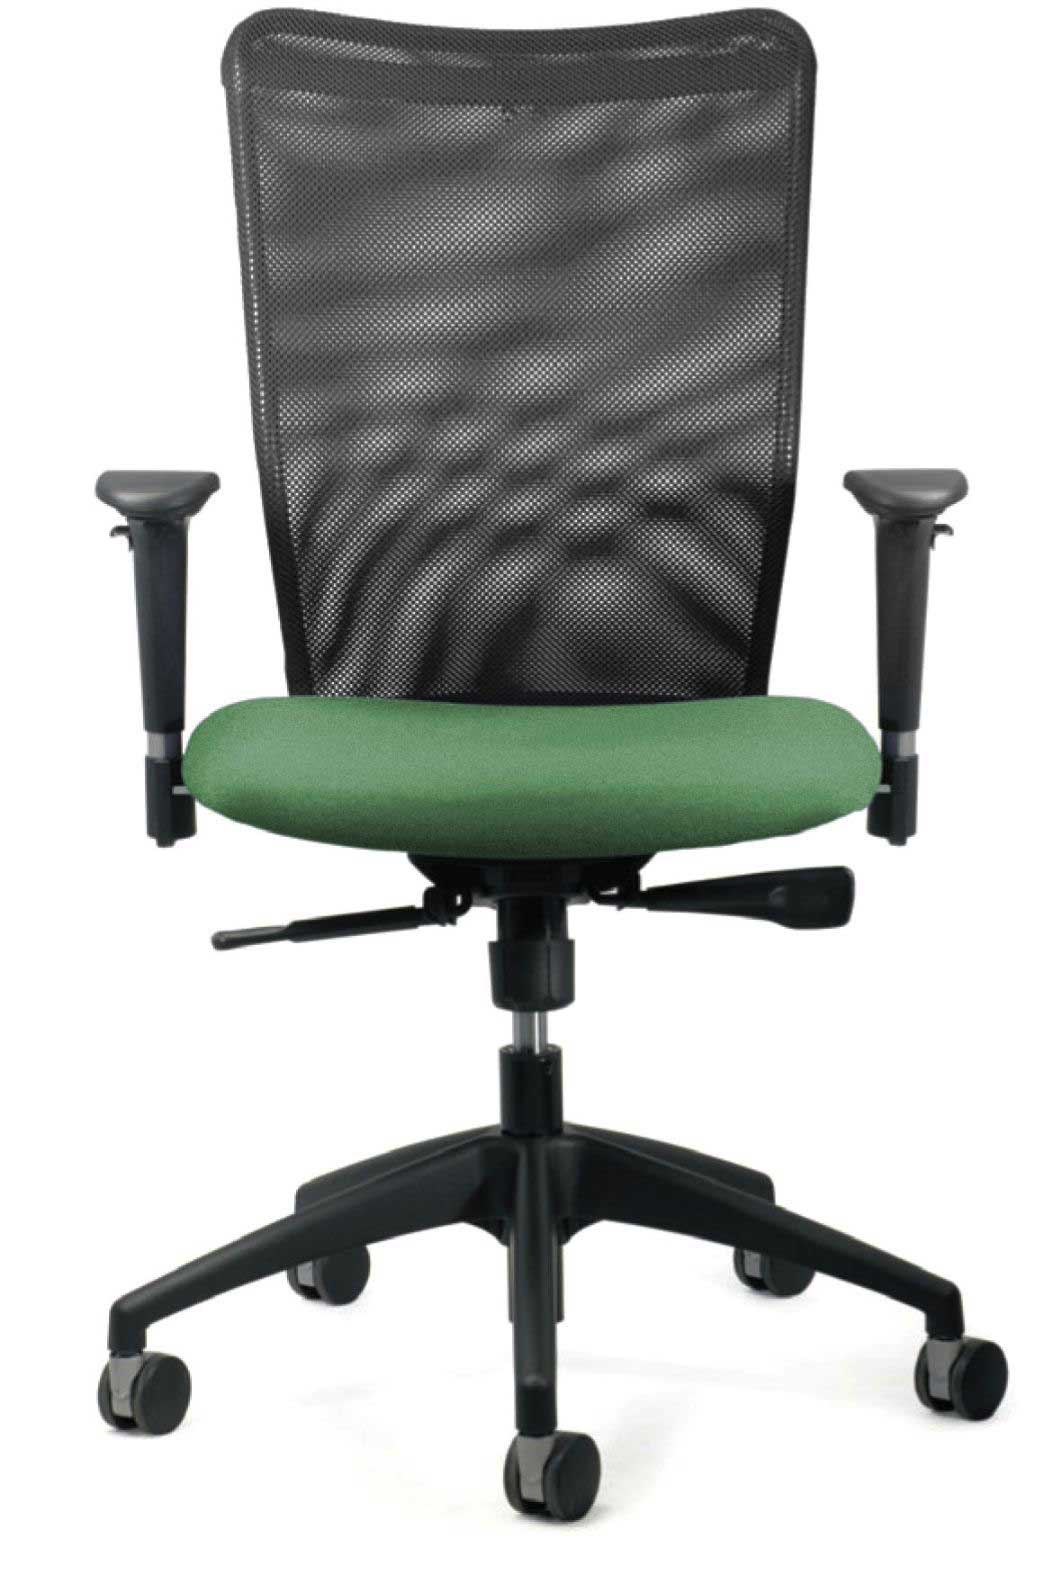 Ergonomic mesh office chair with armrest